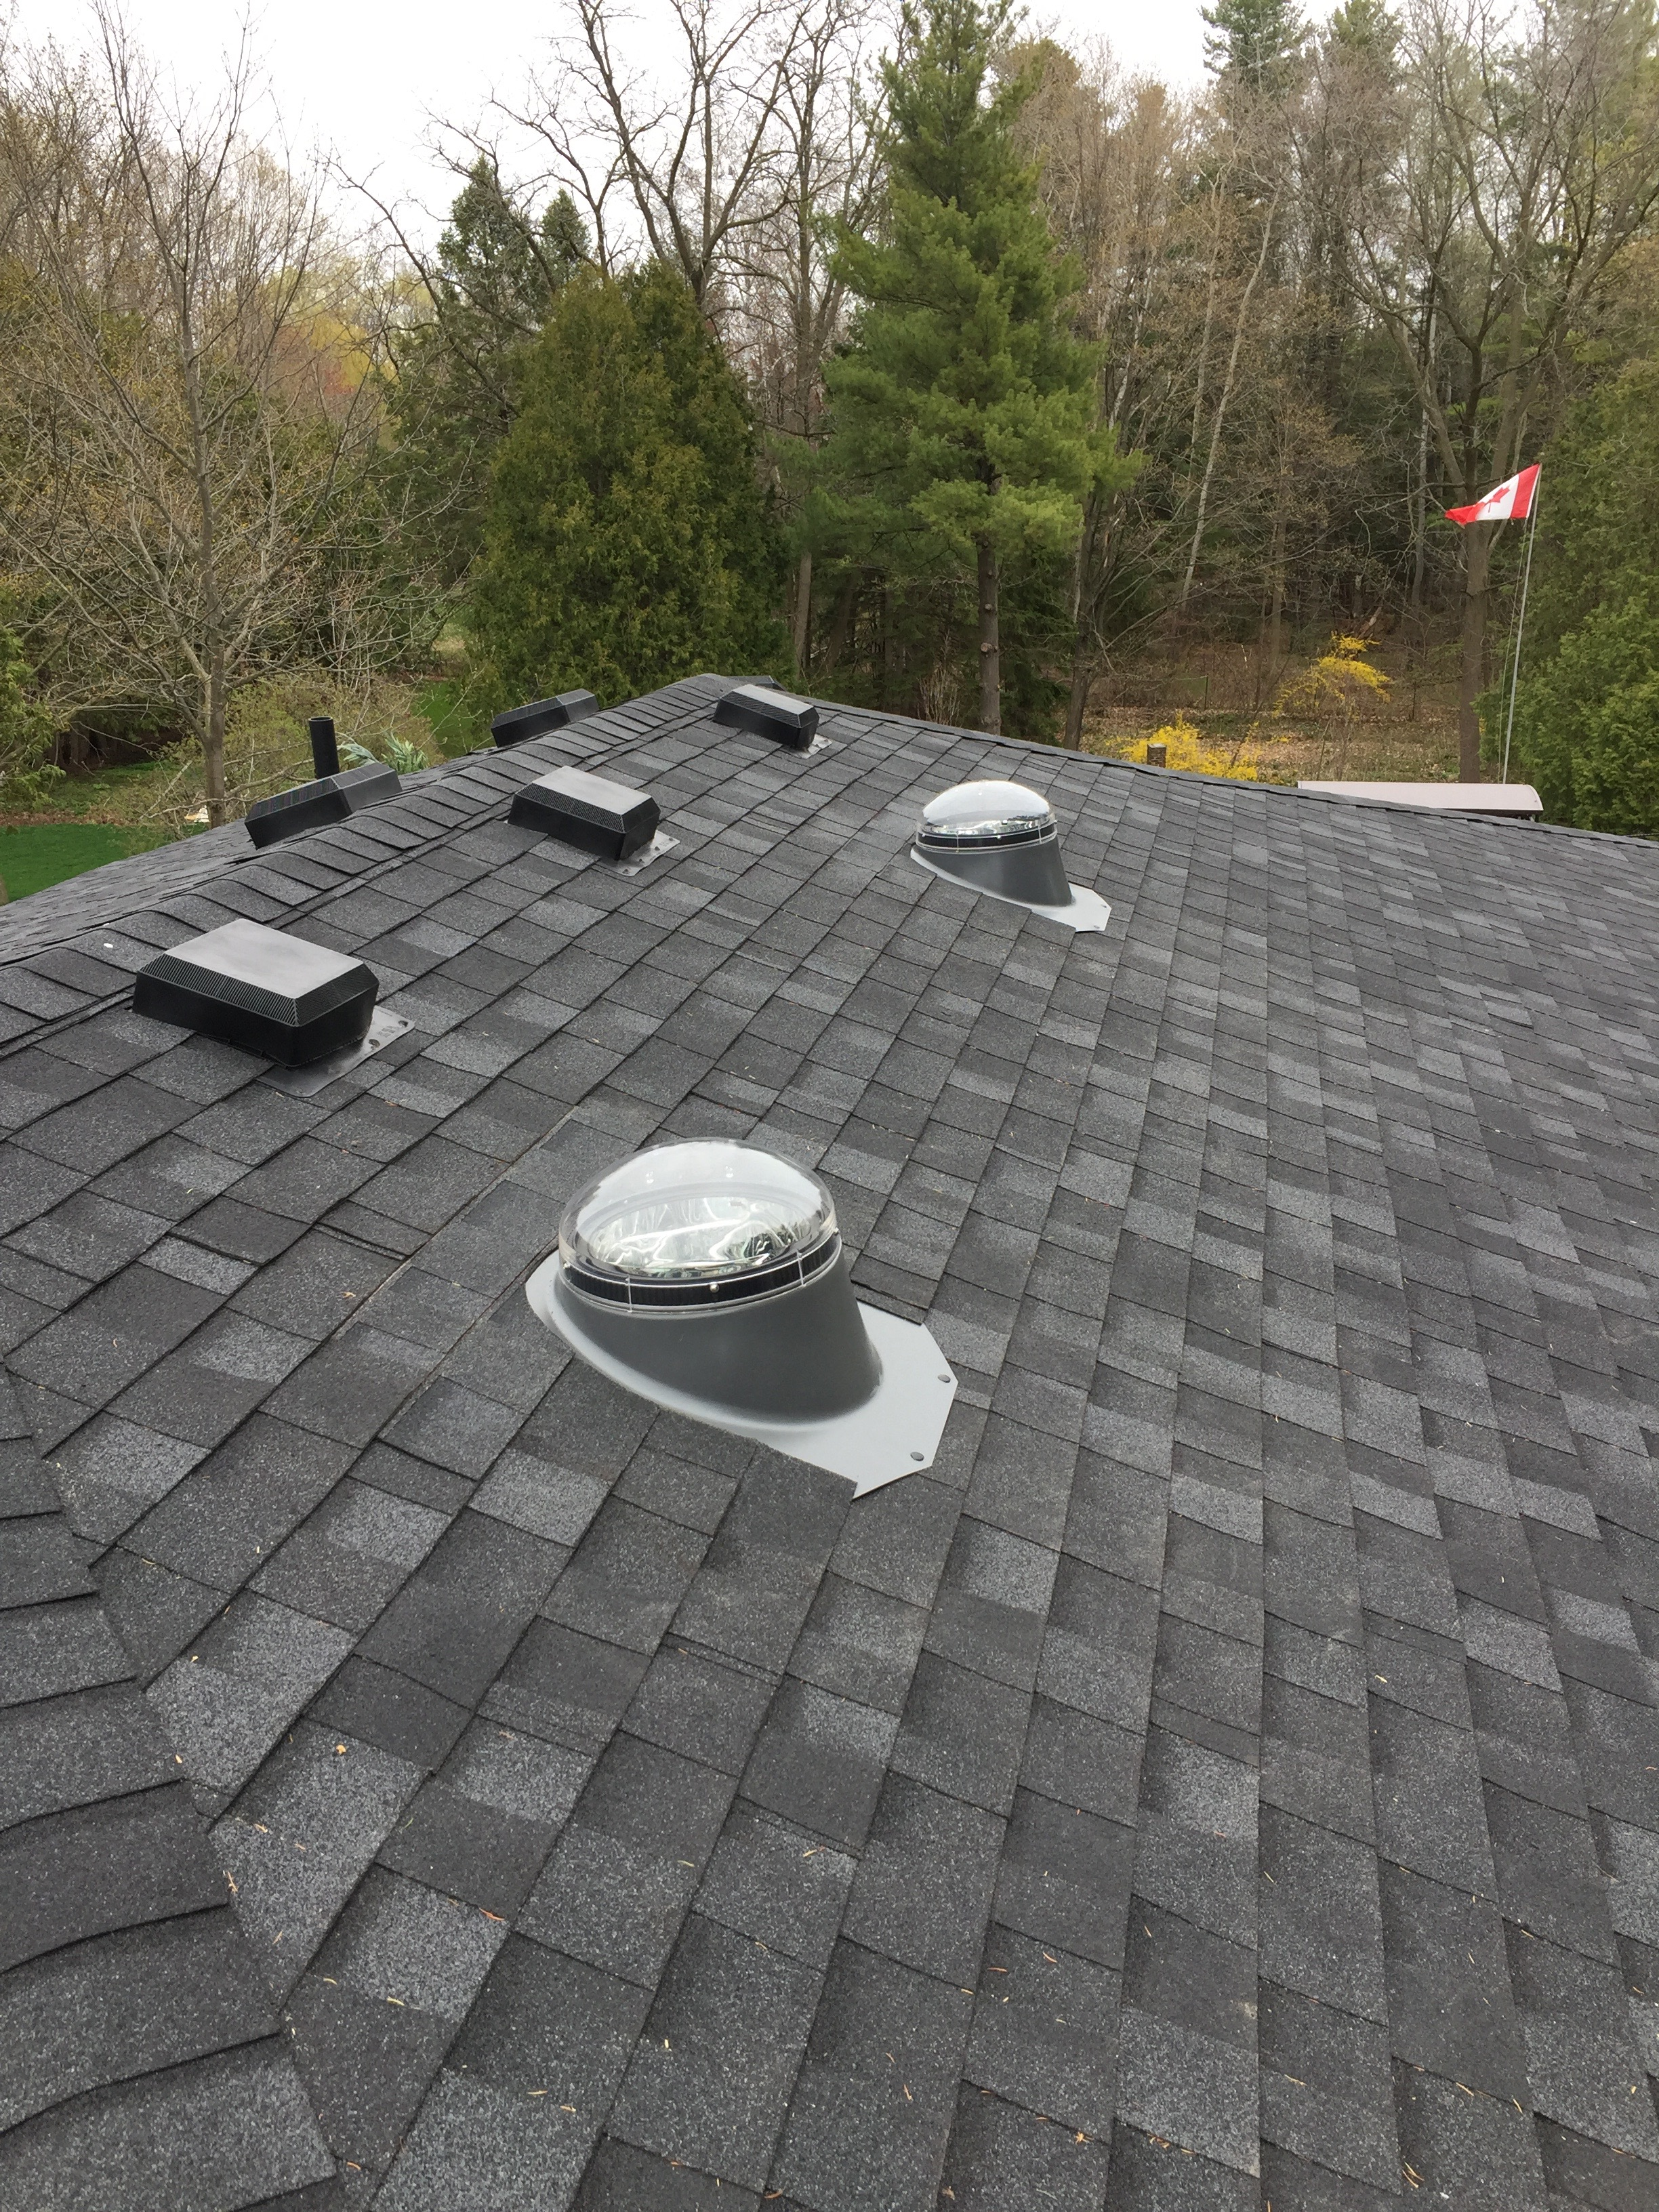 Port Perry Skylight Repair